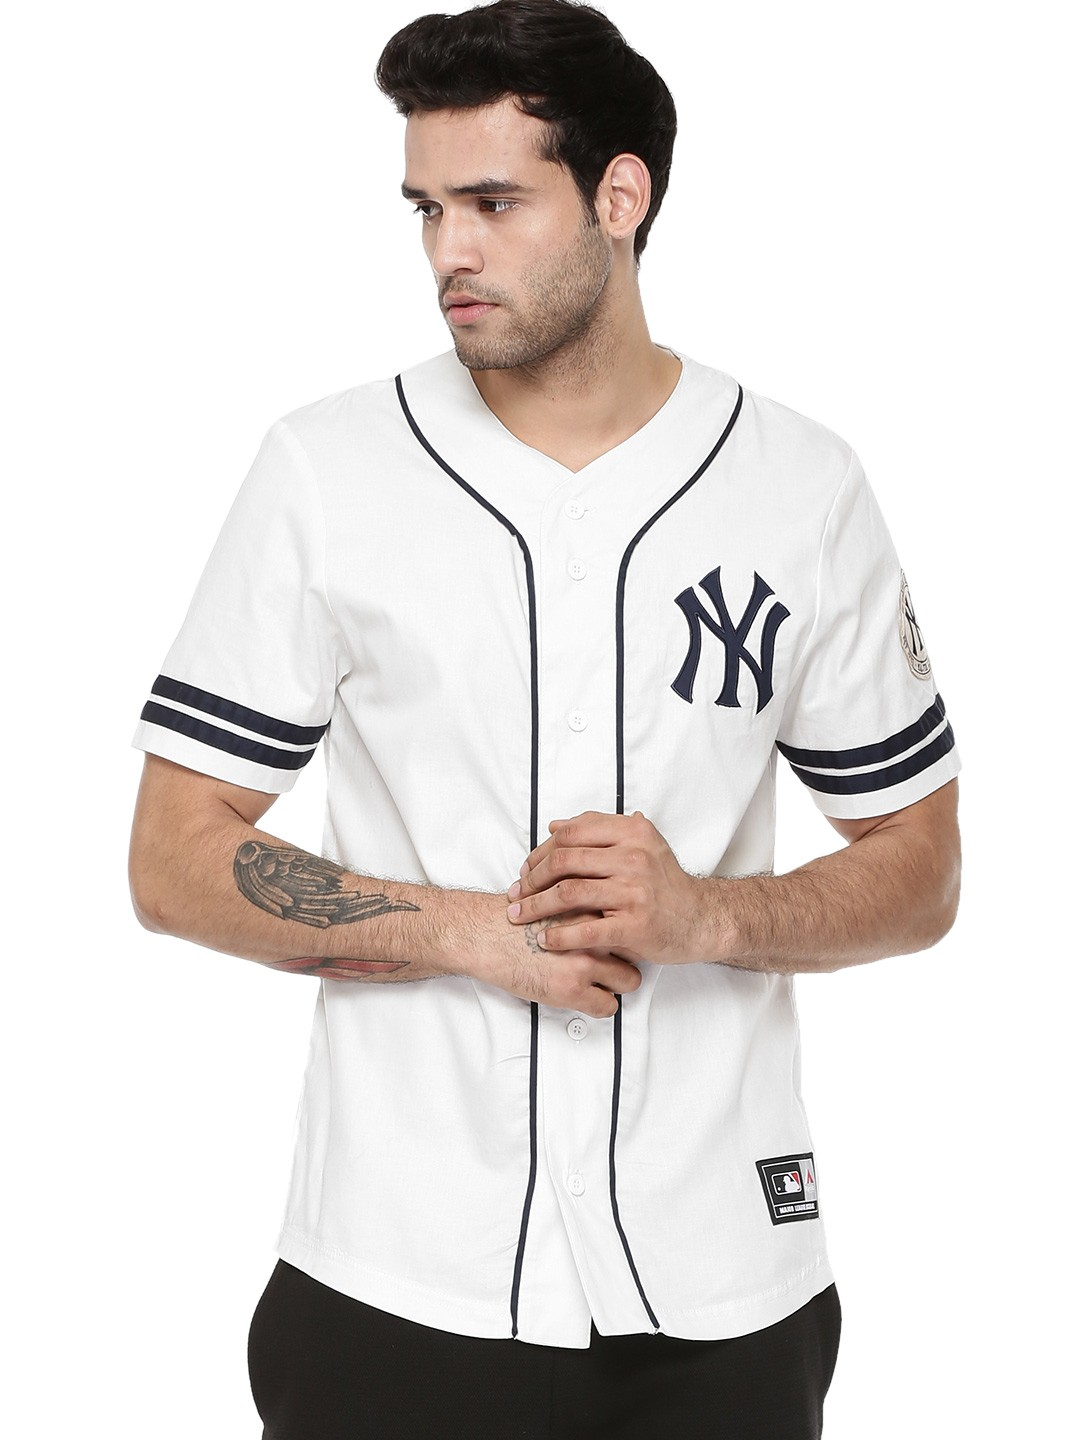 new concept 9a5c2 d1f7b Buy Majestic Cream Official Licensed NY Yankees Baseball ...